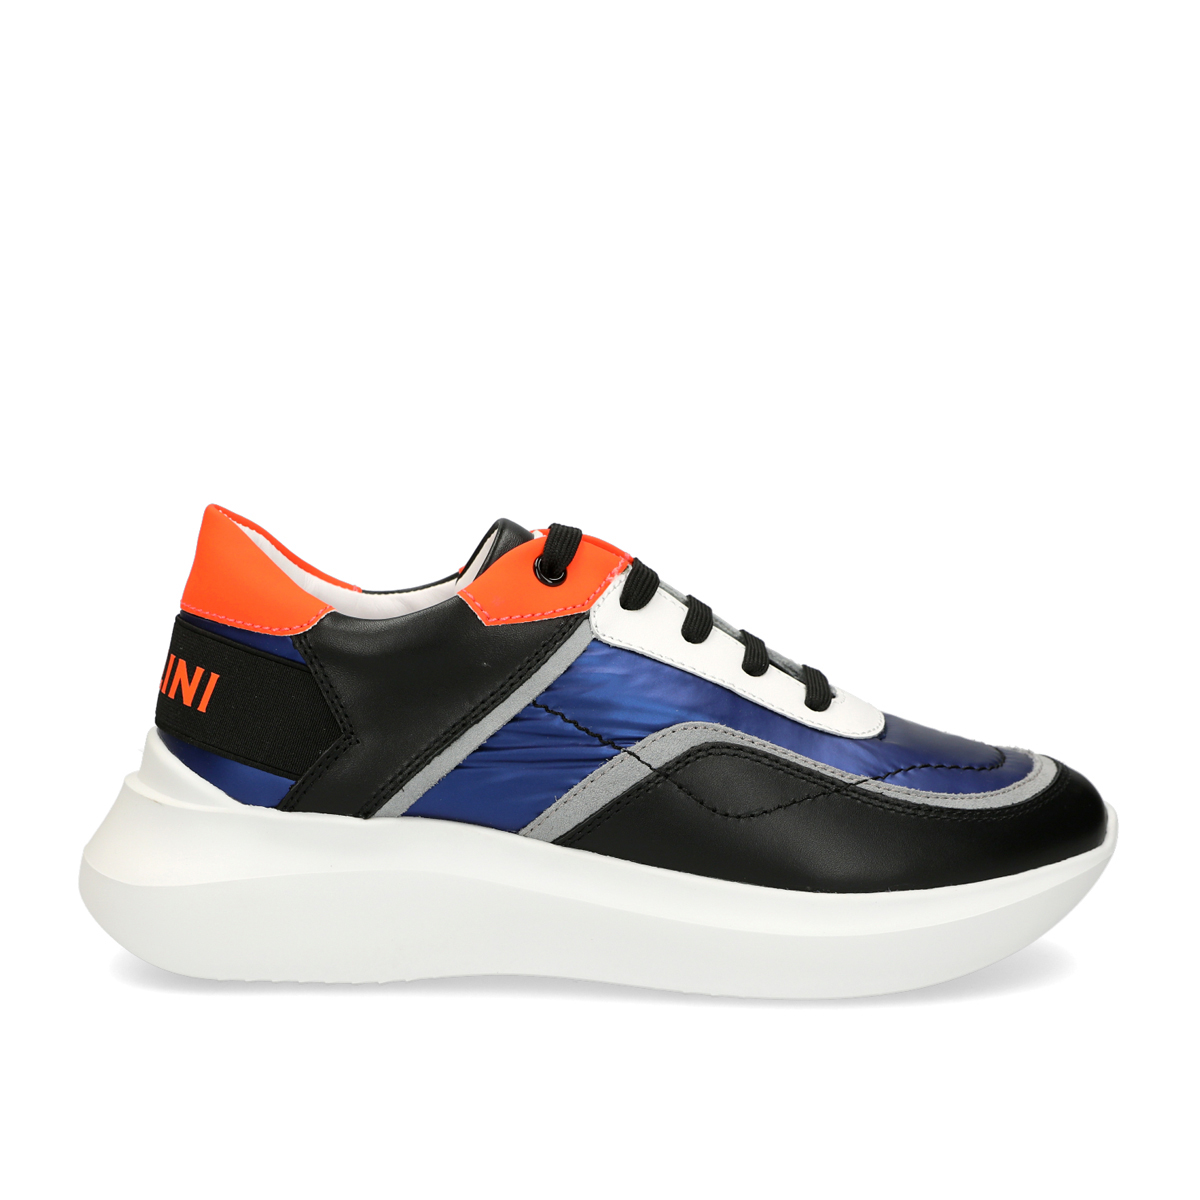 Freedom 50 Sneakers - Multicolour